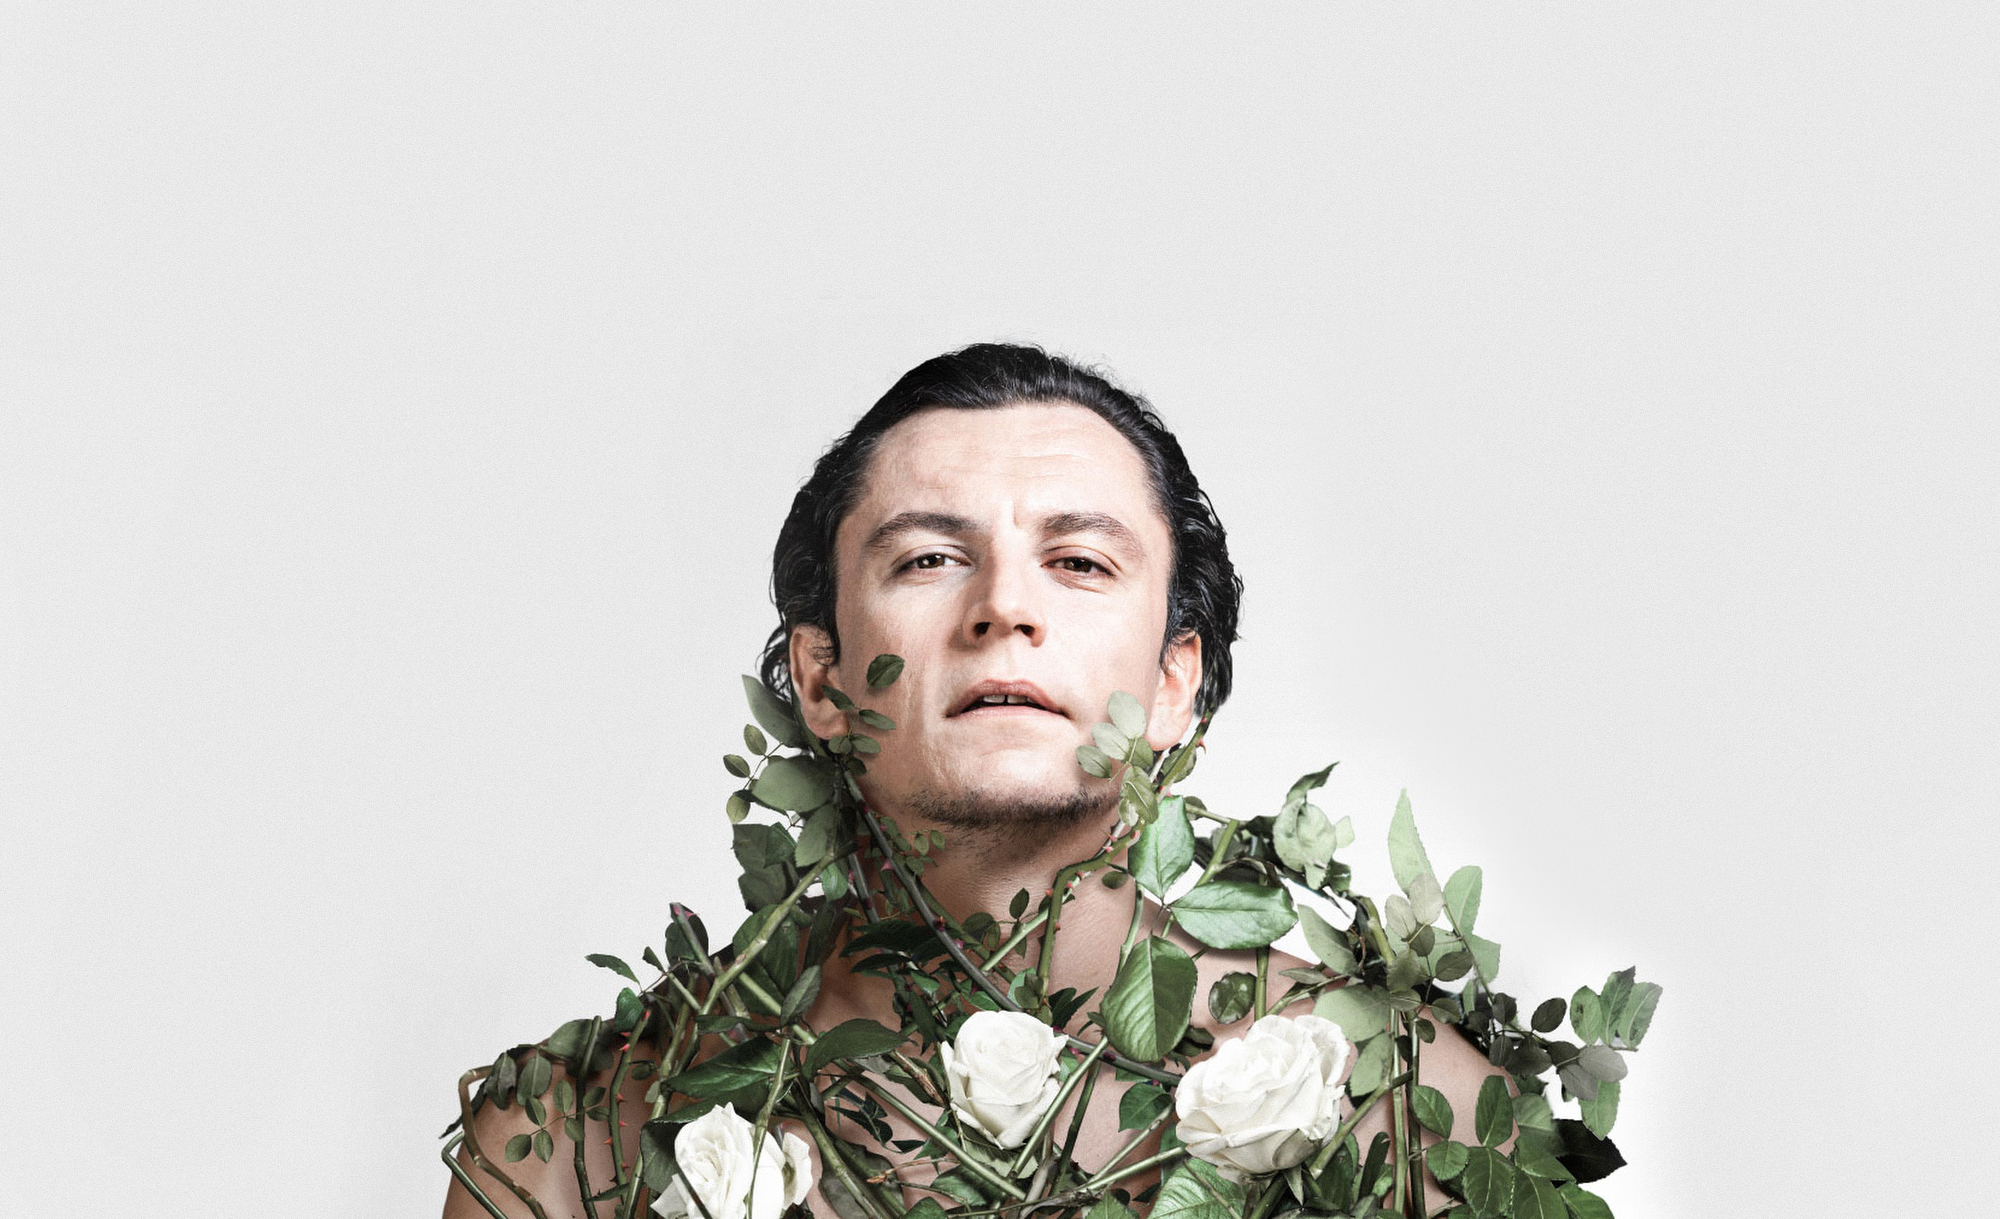 RICHARD III - Headlong Theatre - Theatre Publicity Poster Artwork